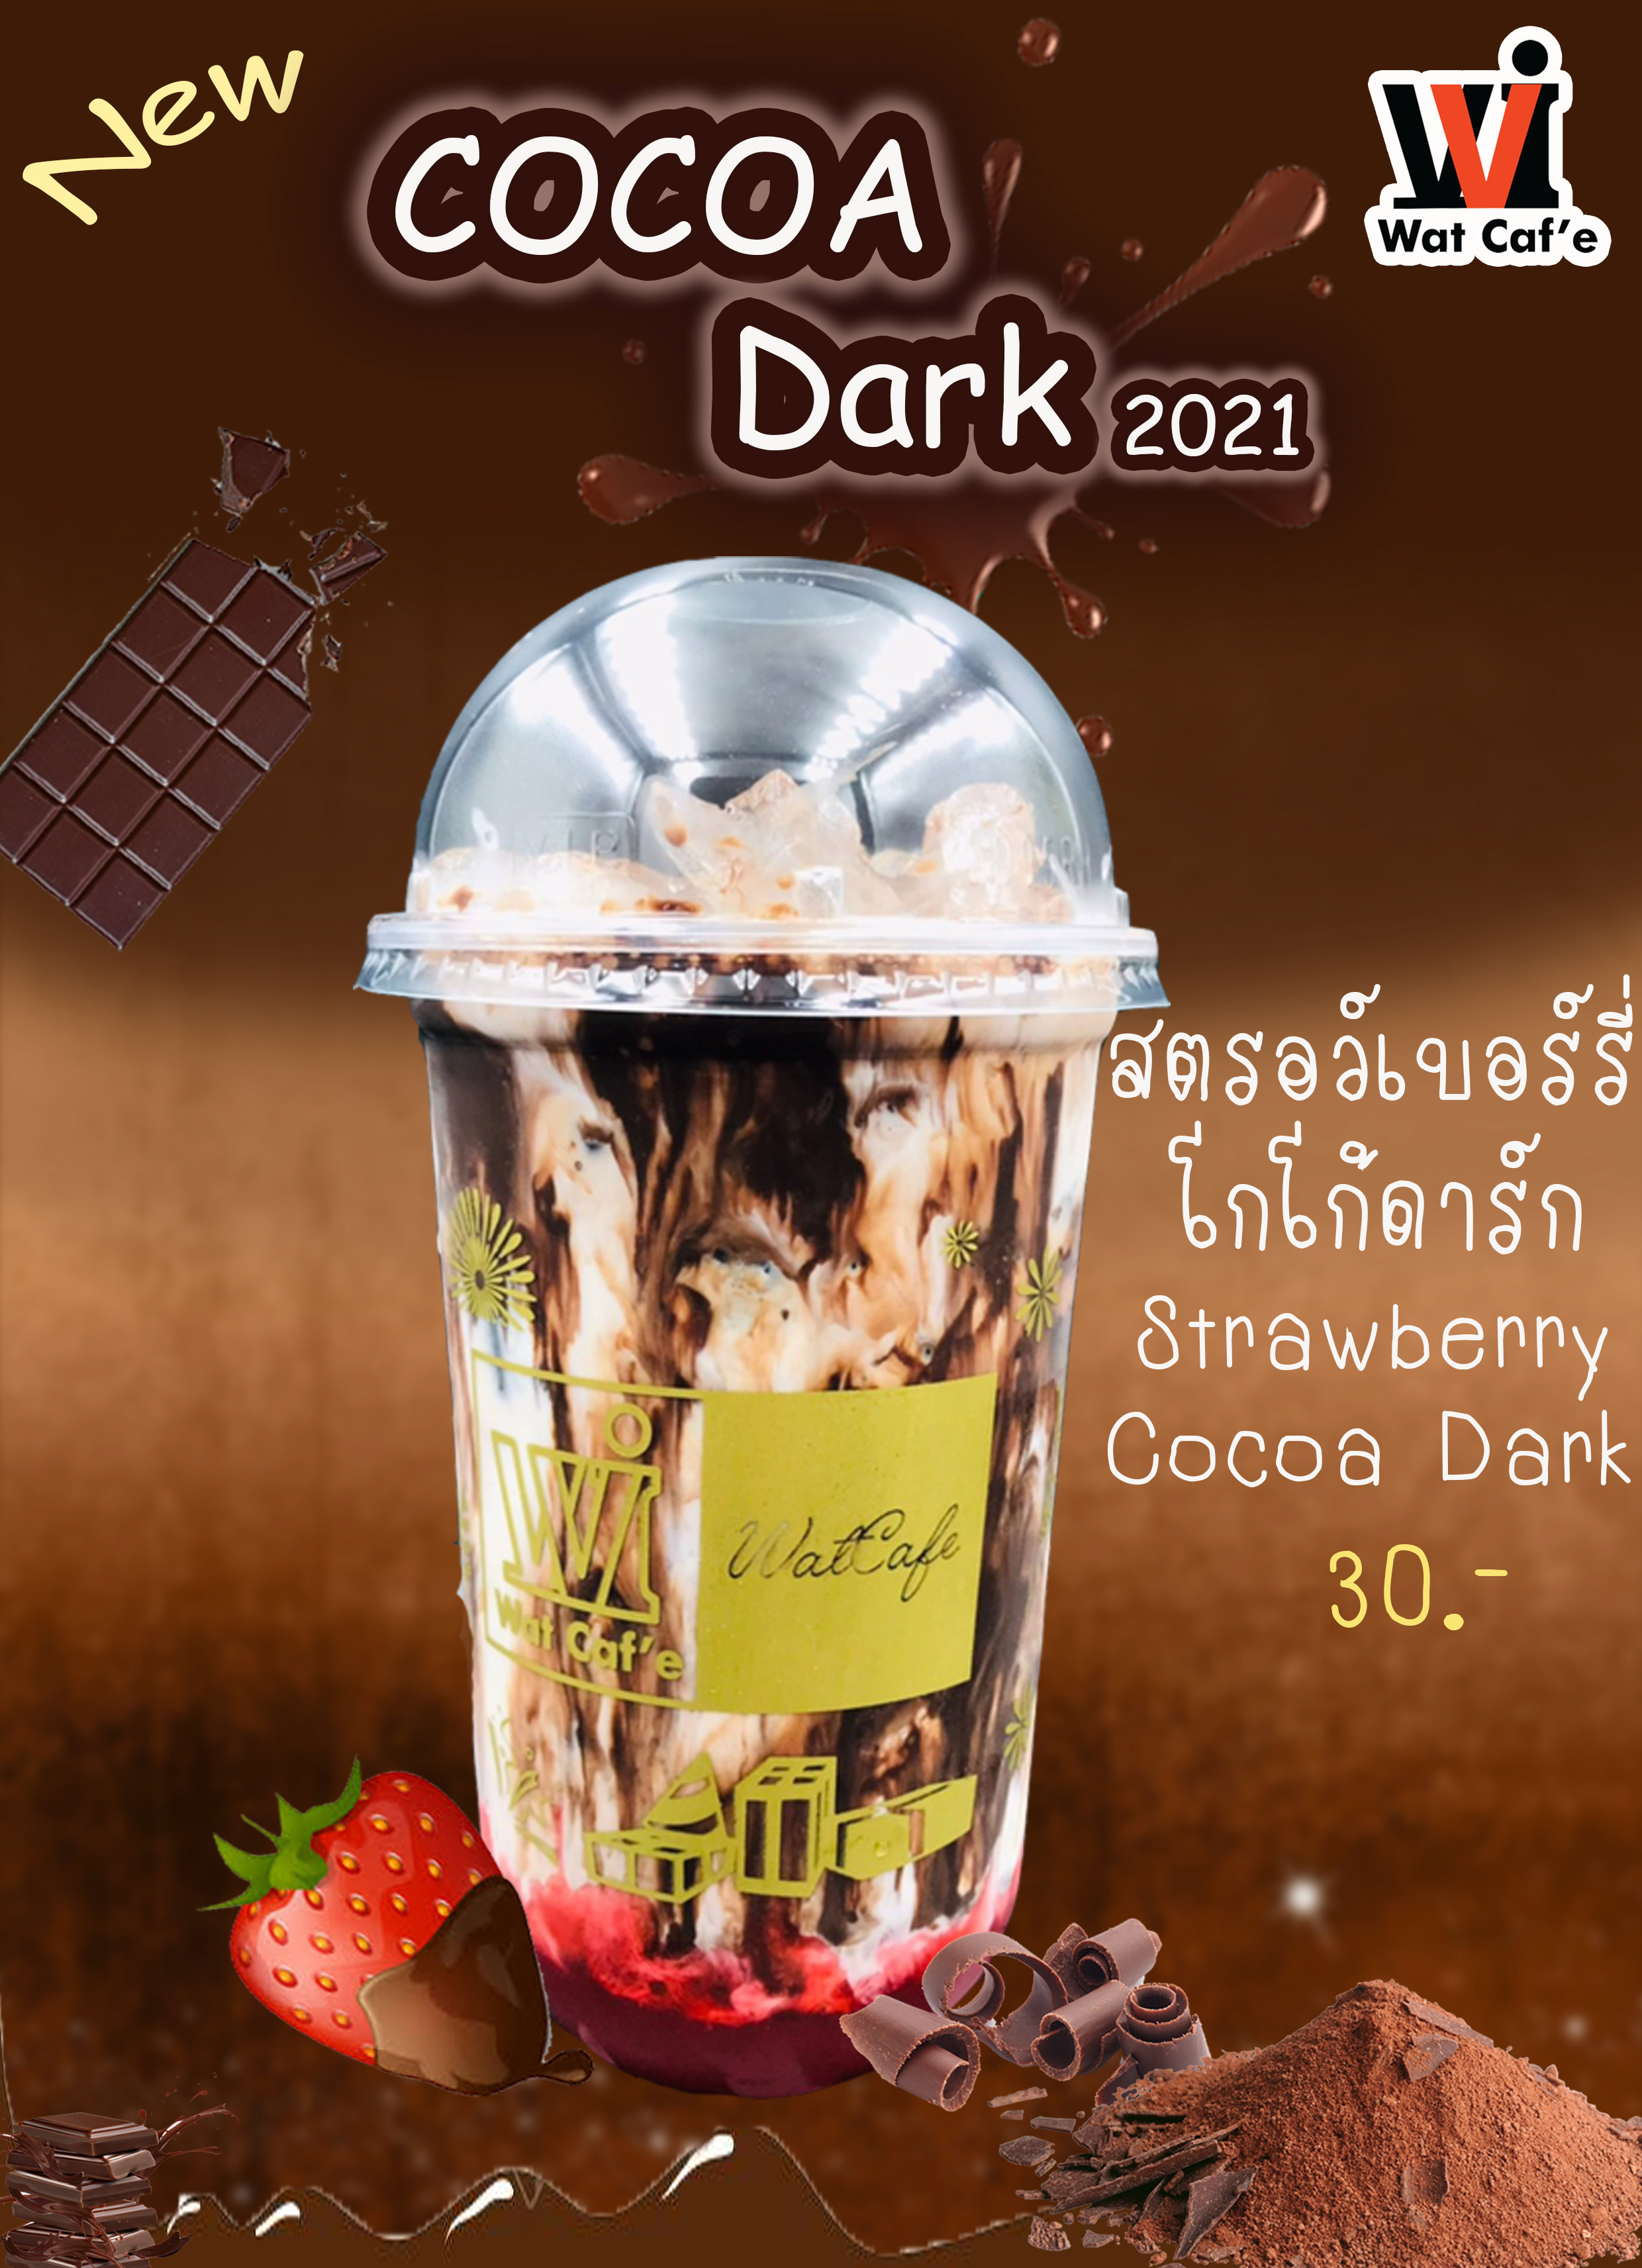 Strawberry Cocoa Dark